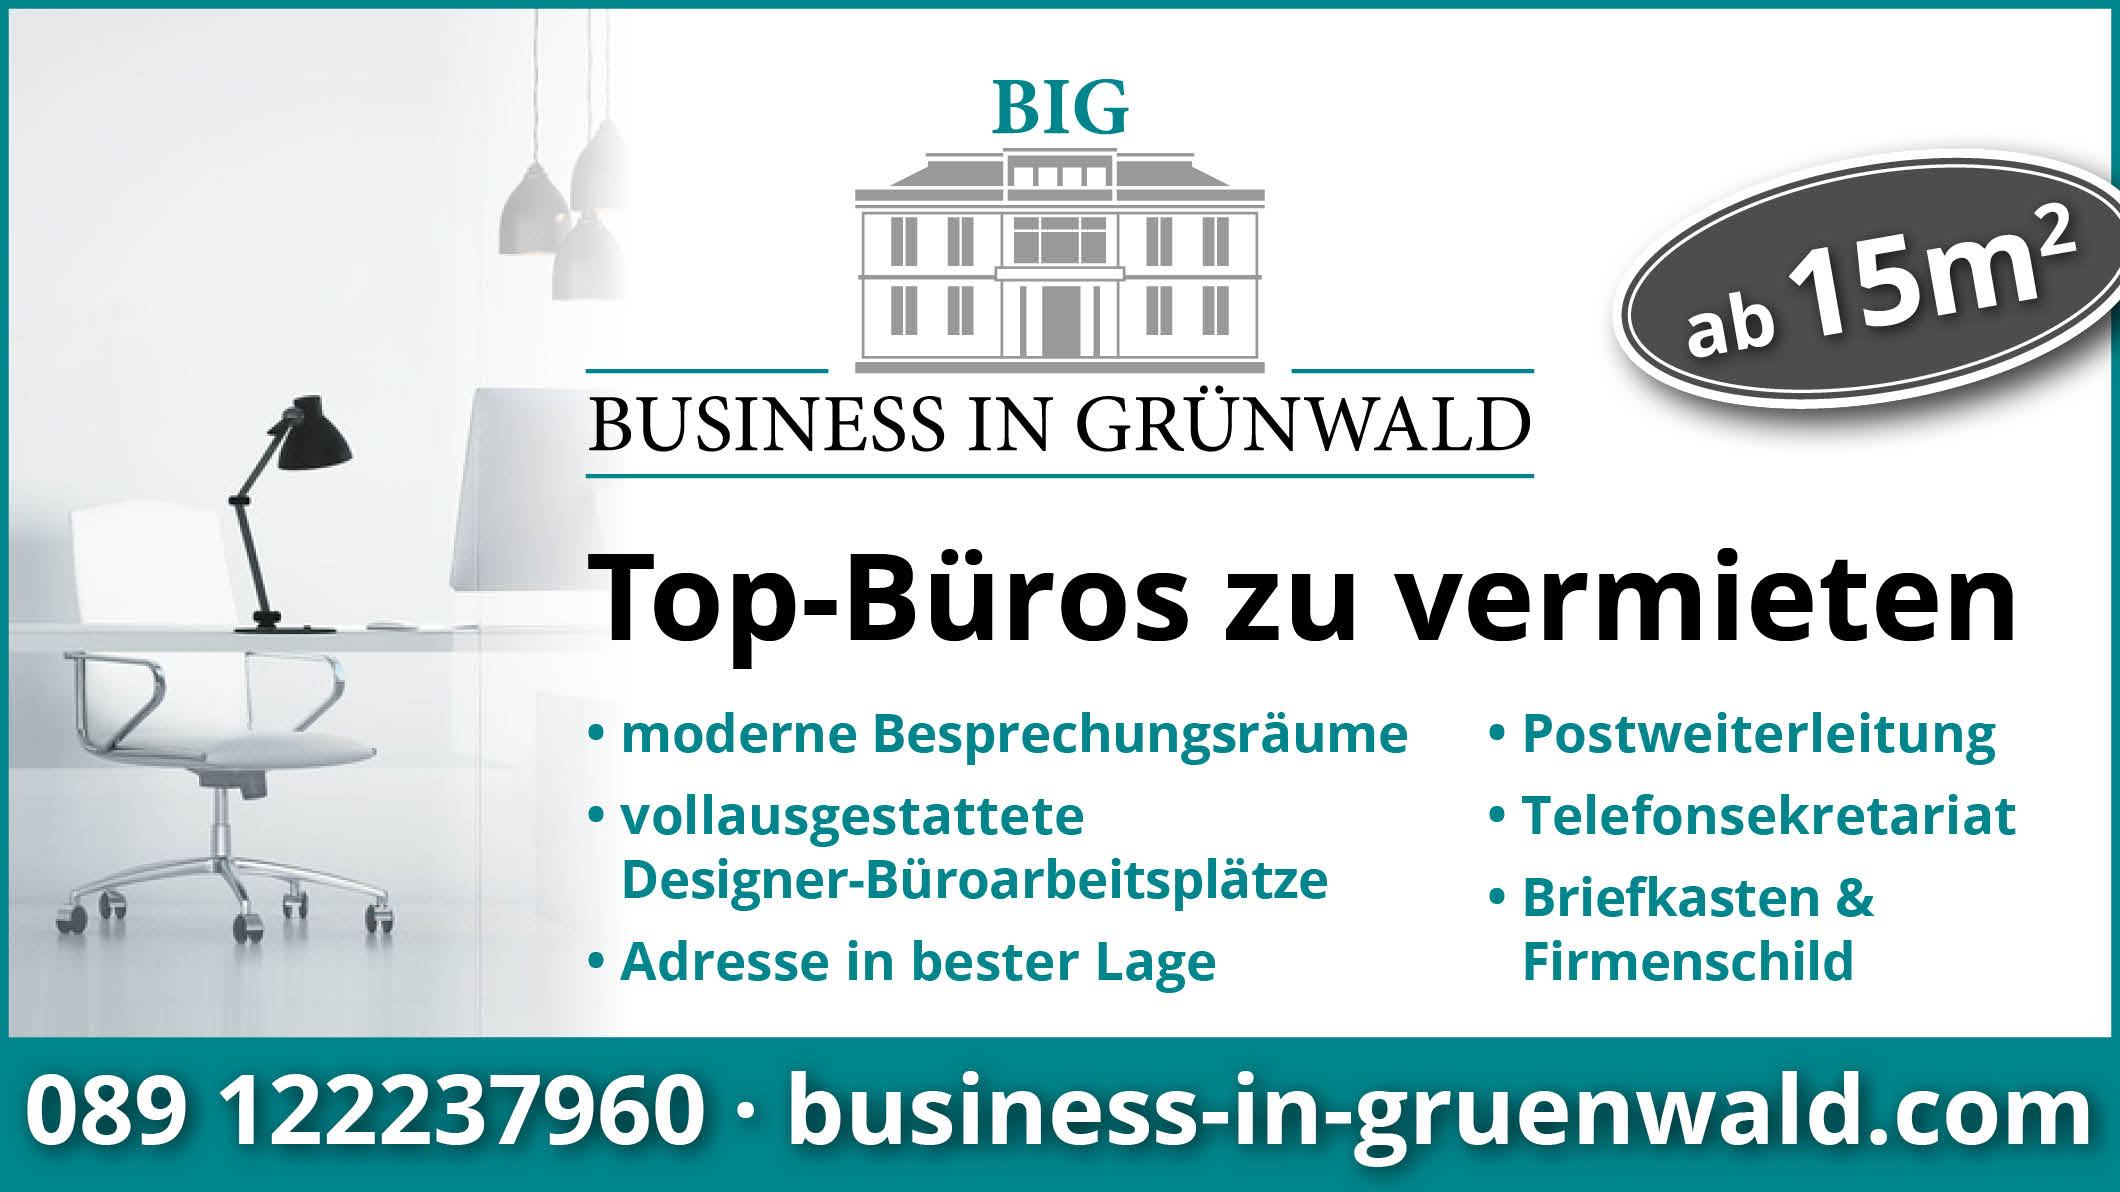 B-I-G Business in Grünwald GmbH